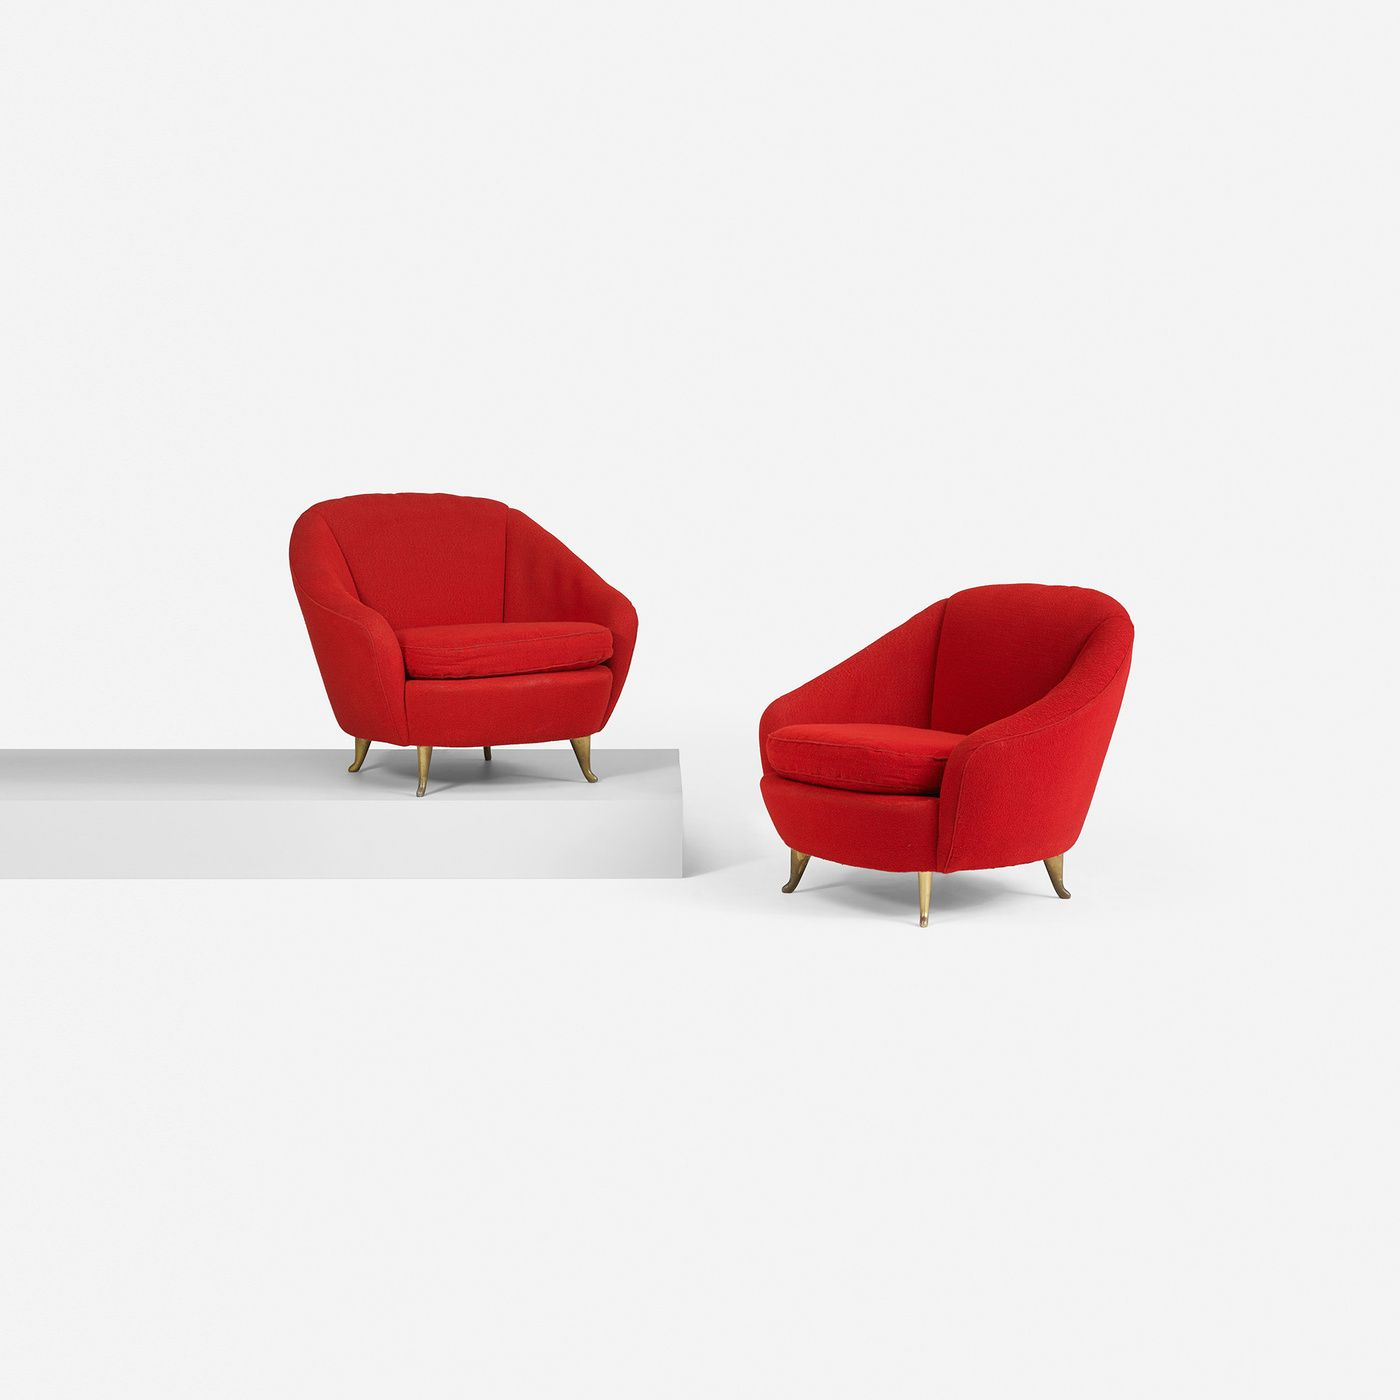 167 Gio Ponti lounge chairs pair Design 27 March 2014